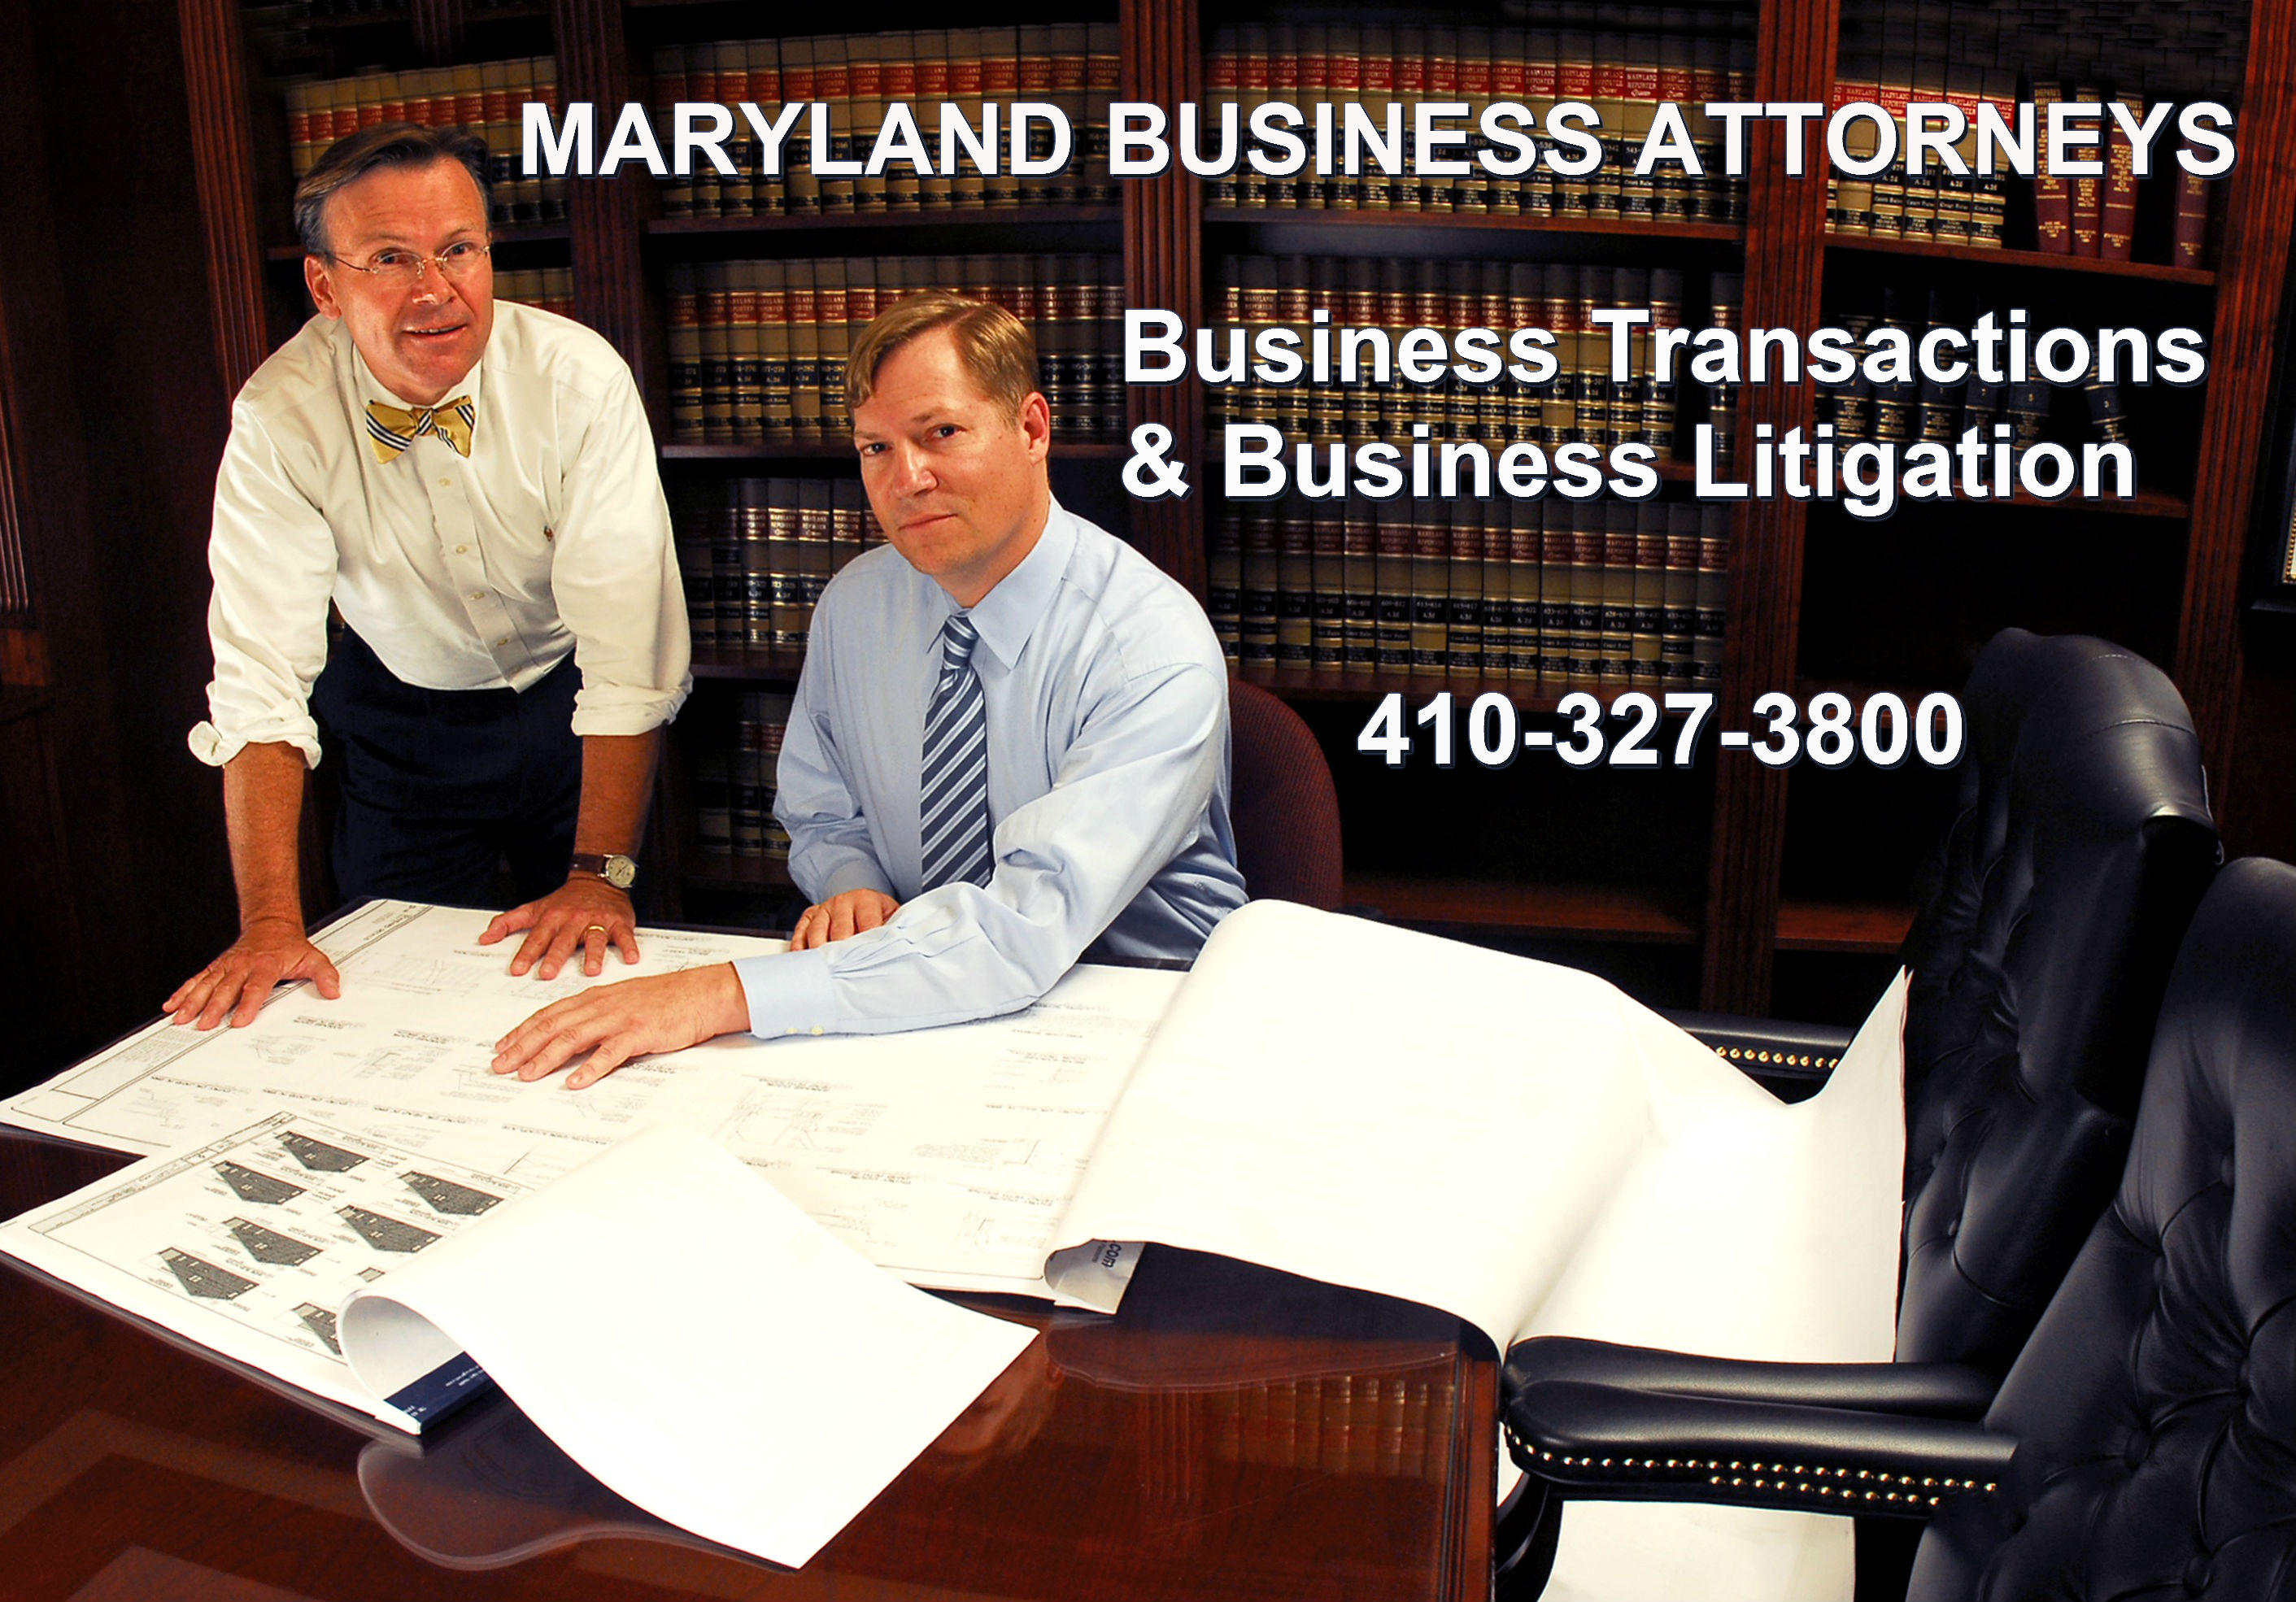 Maryland business attorneys preparing legal businesss transactions and pursuing business litigation